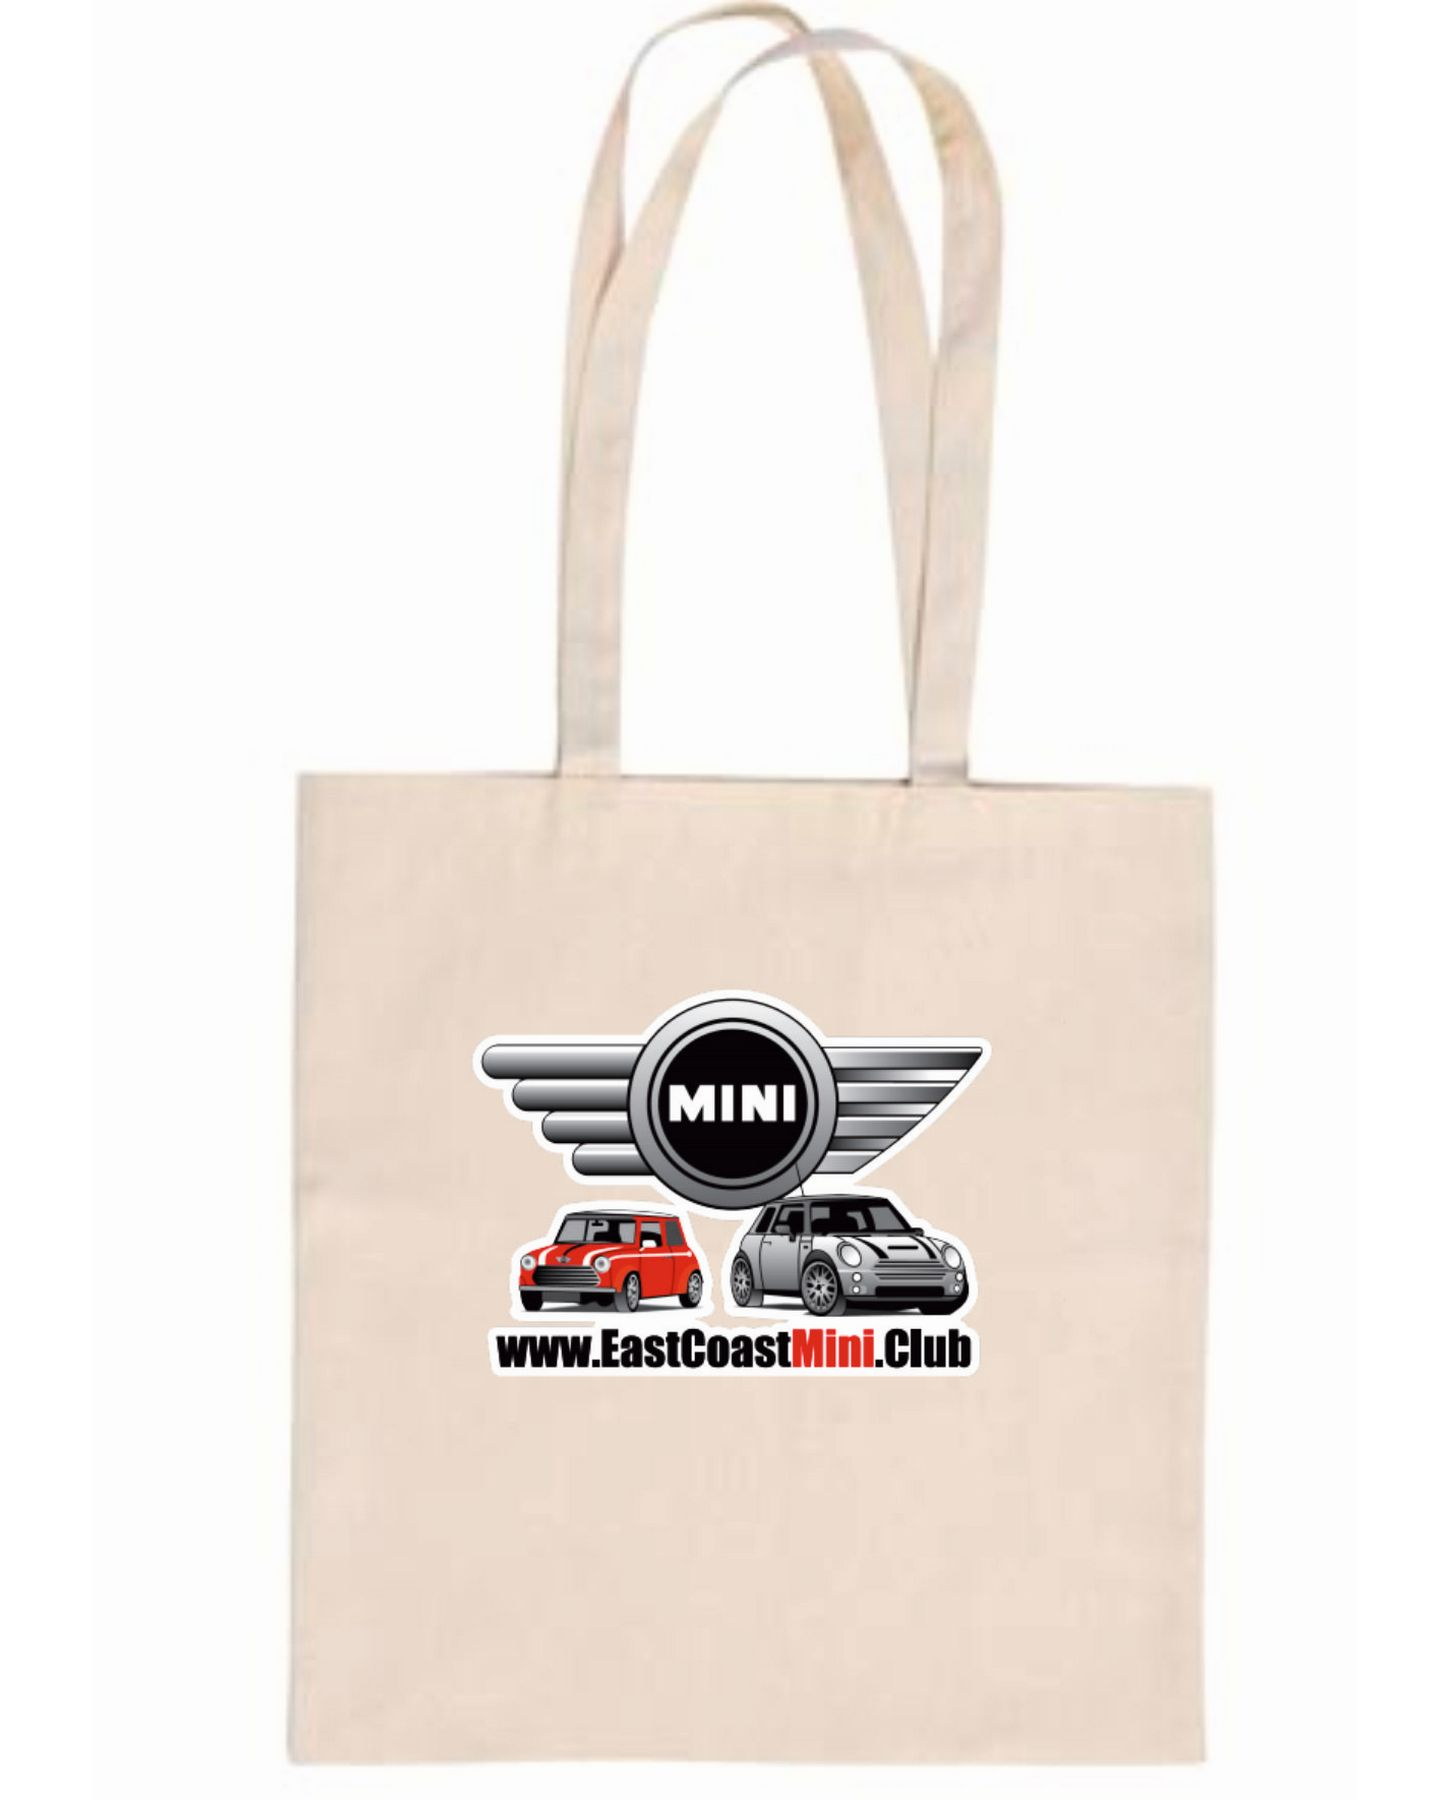 East Coast Mini Club – Bag for Life